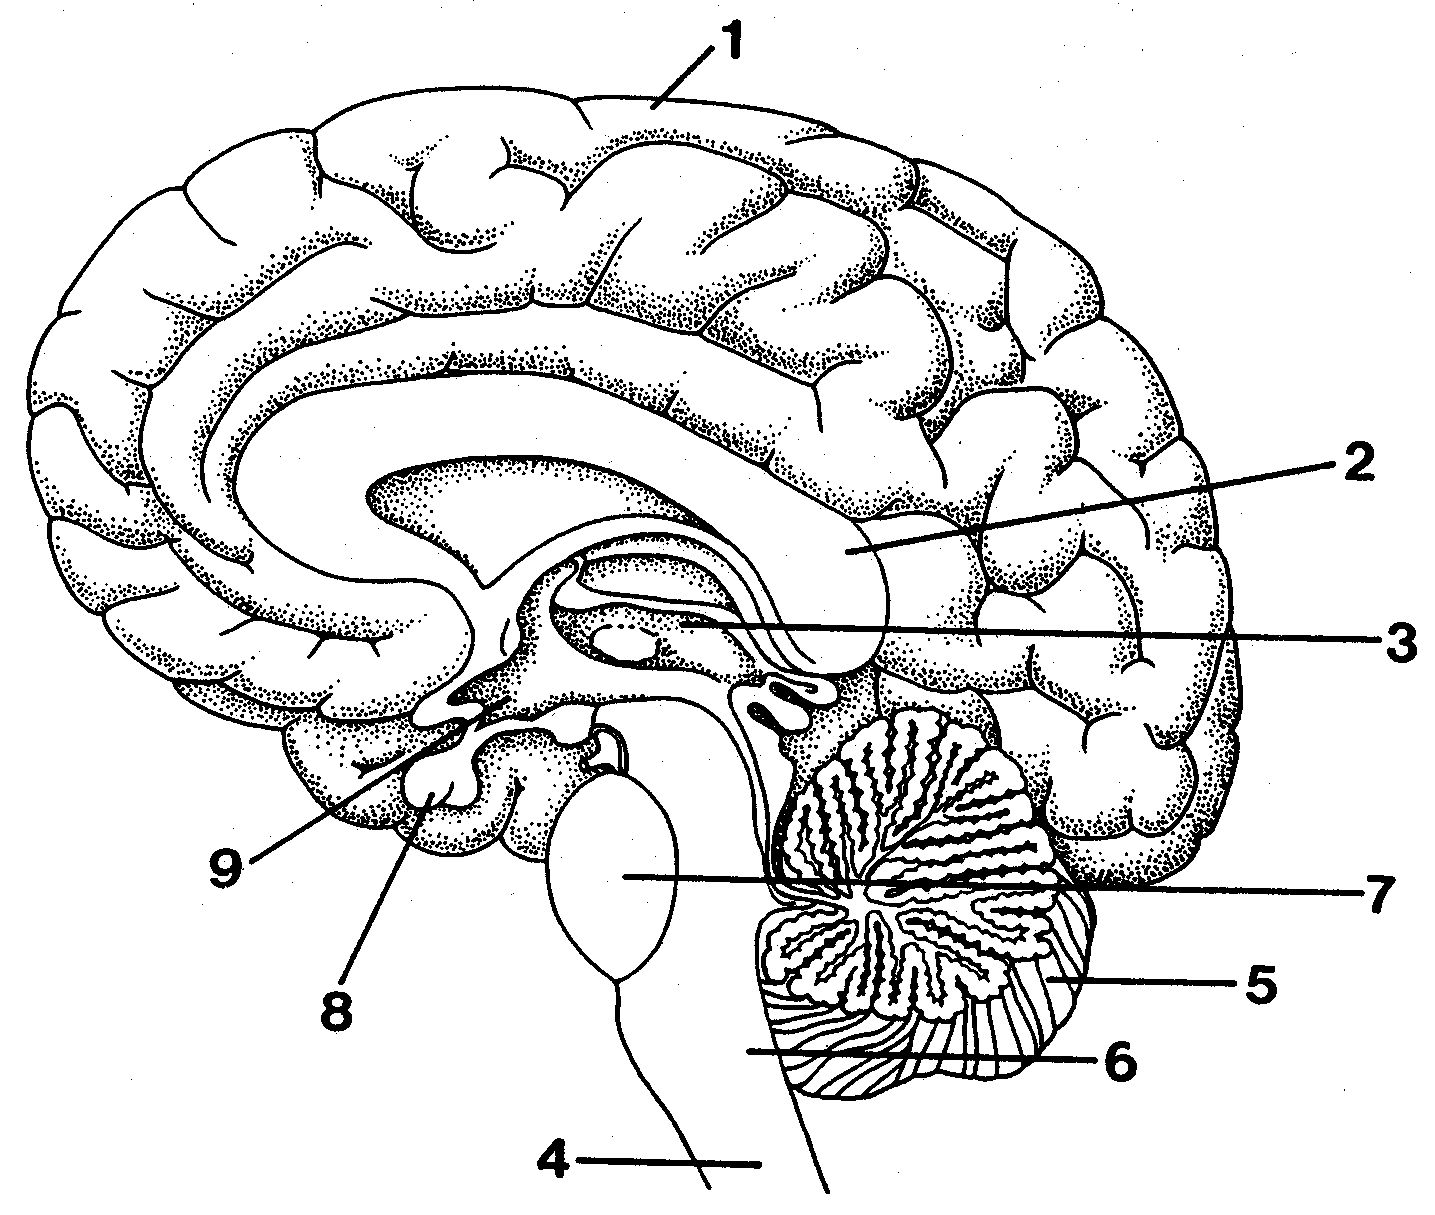 Diagram Of Where The Brain Is In The Body Human Brain